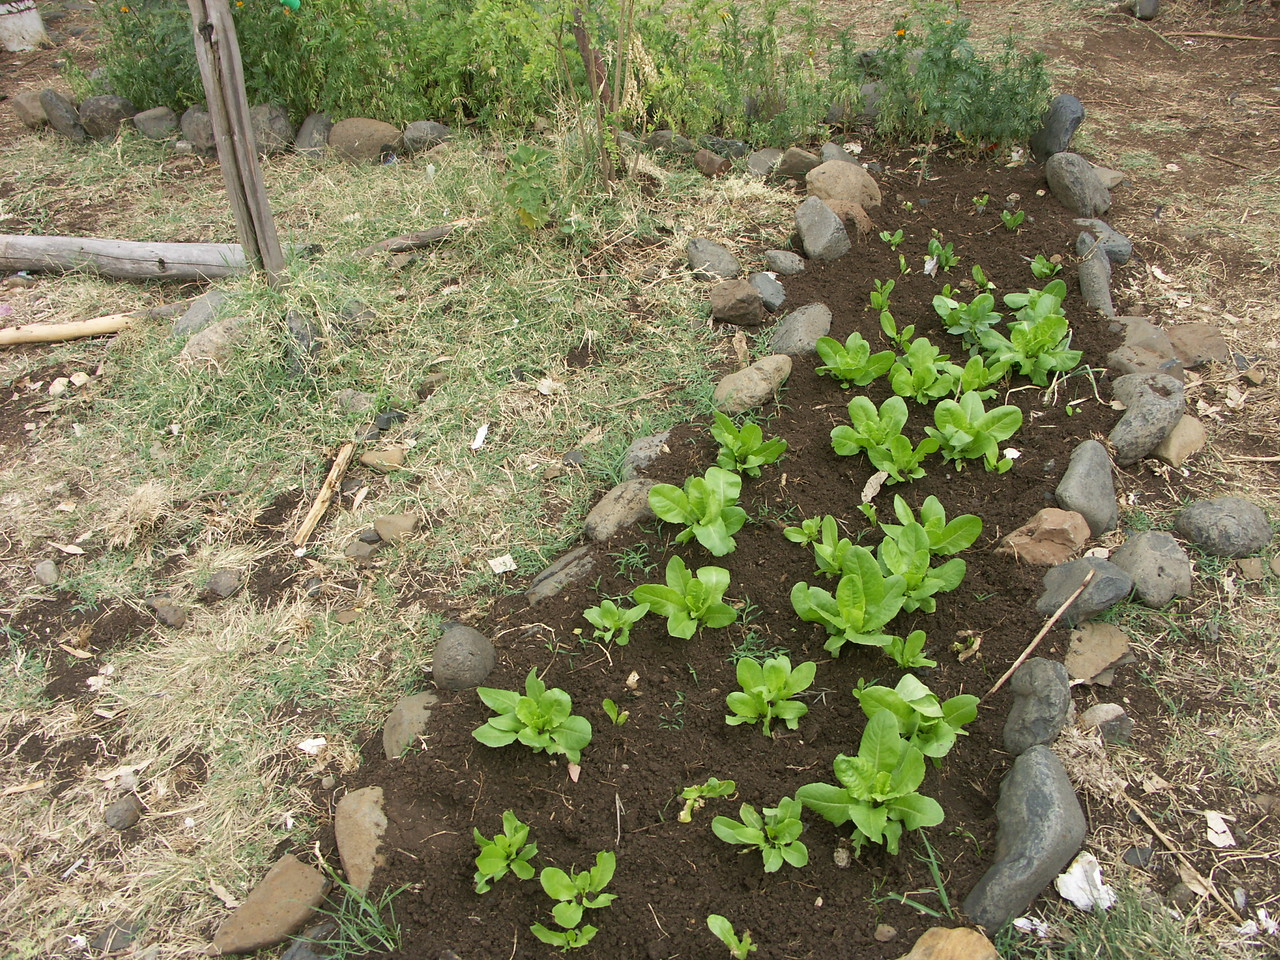 School garden - growing cabbage for generating extra income